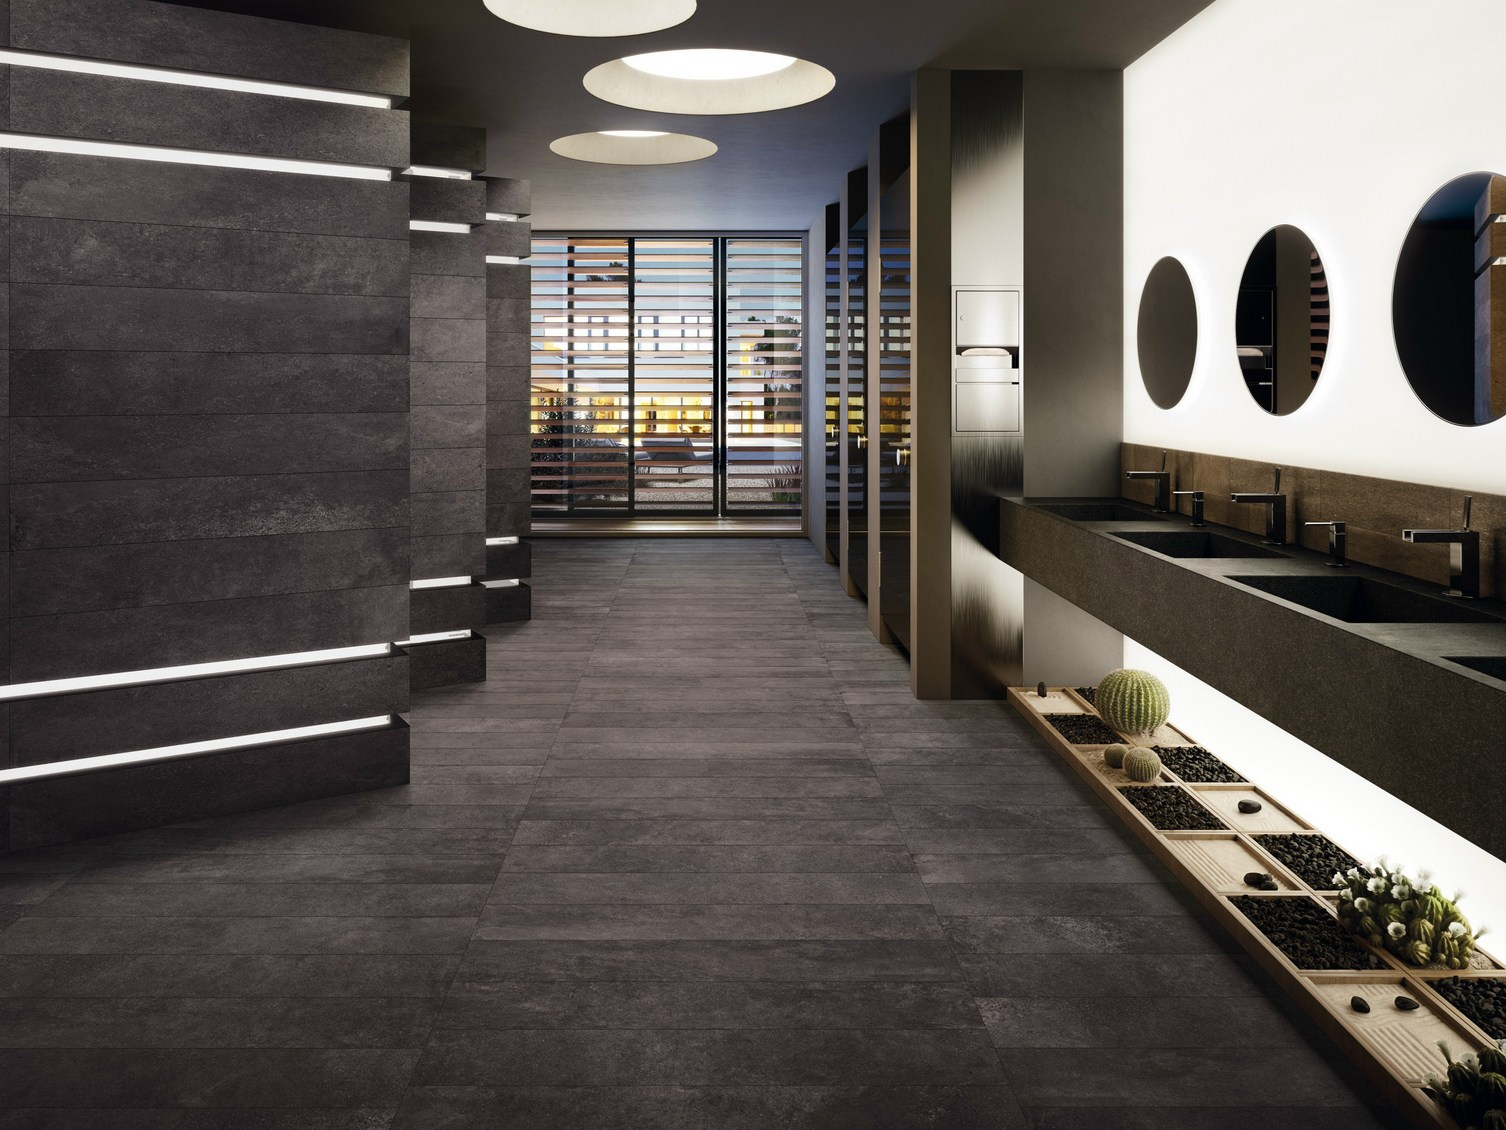 Indooroutdoor flooring moov anthracite moov collection by ceramiche keope